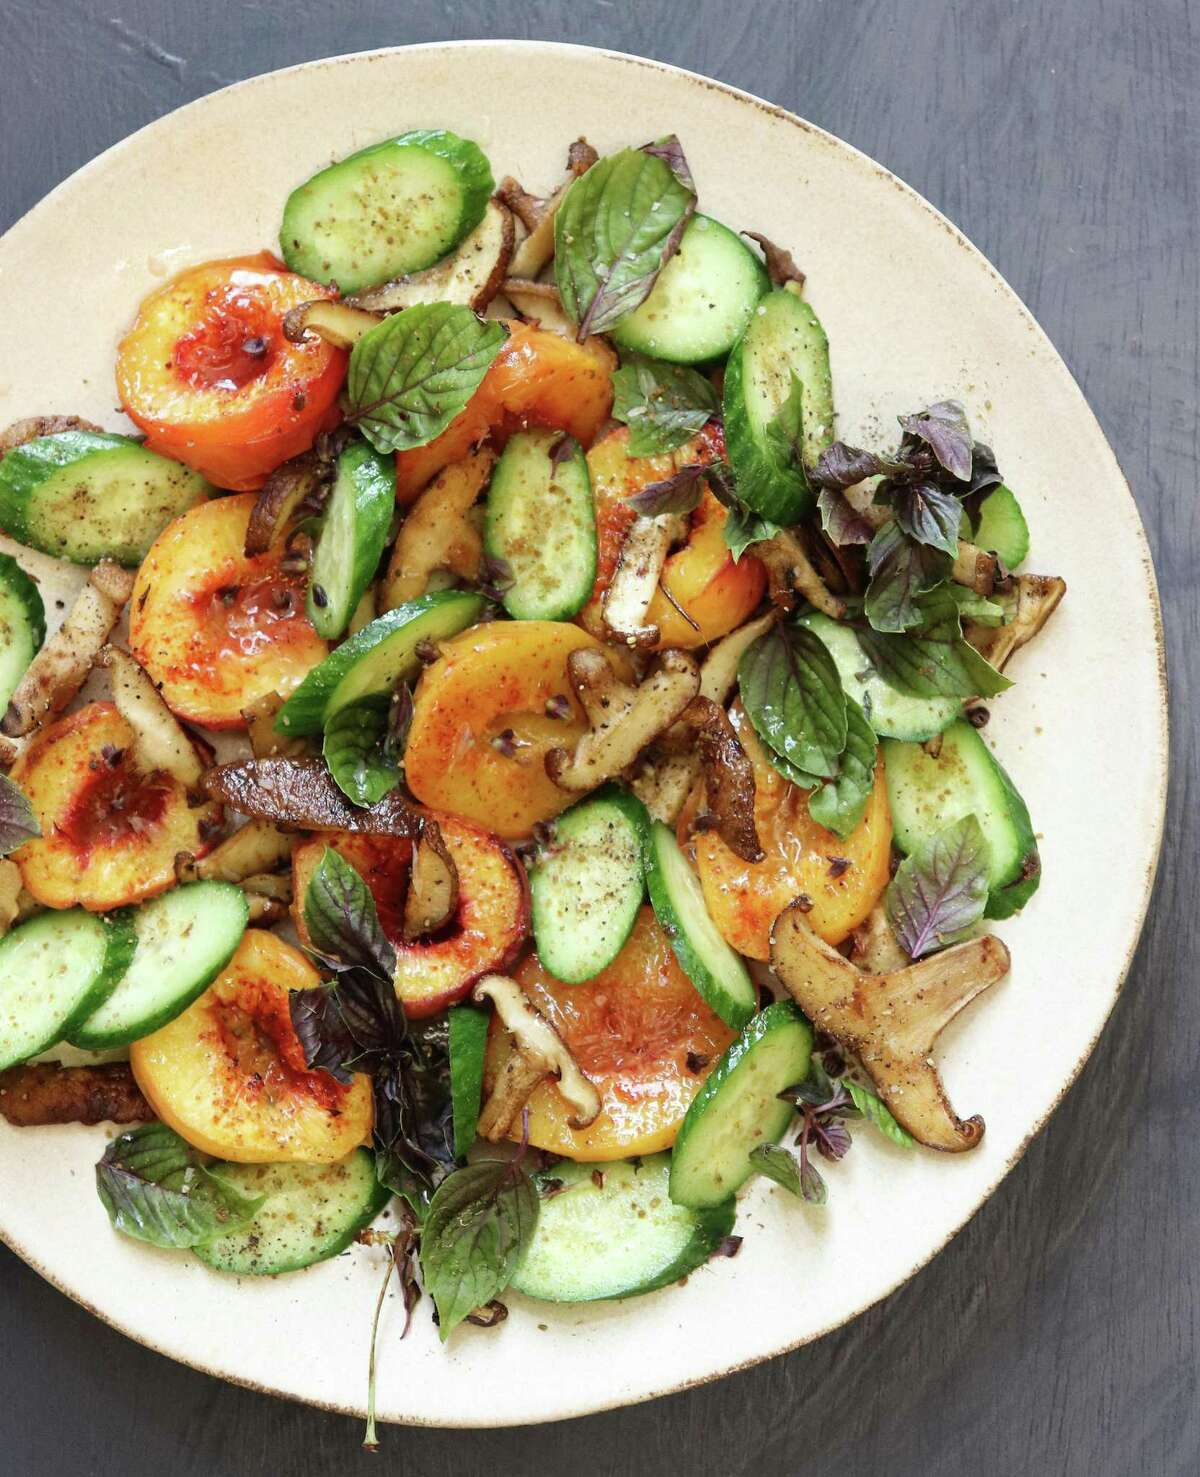 Grilling or roasting peaches with spices ramps up their flavor near the end of the season.